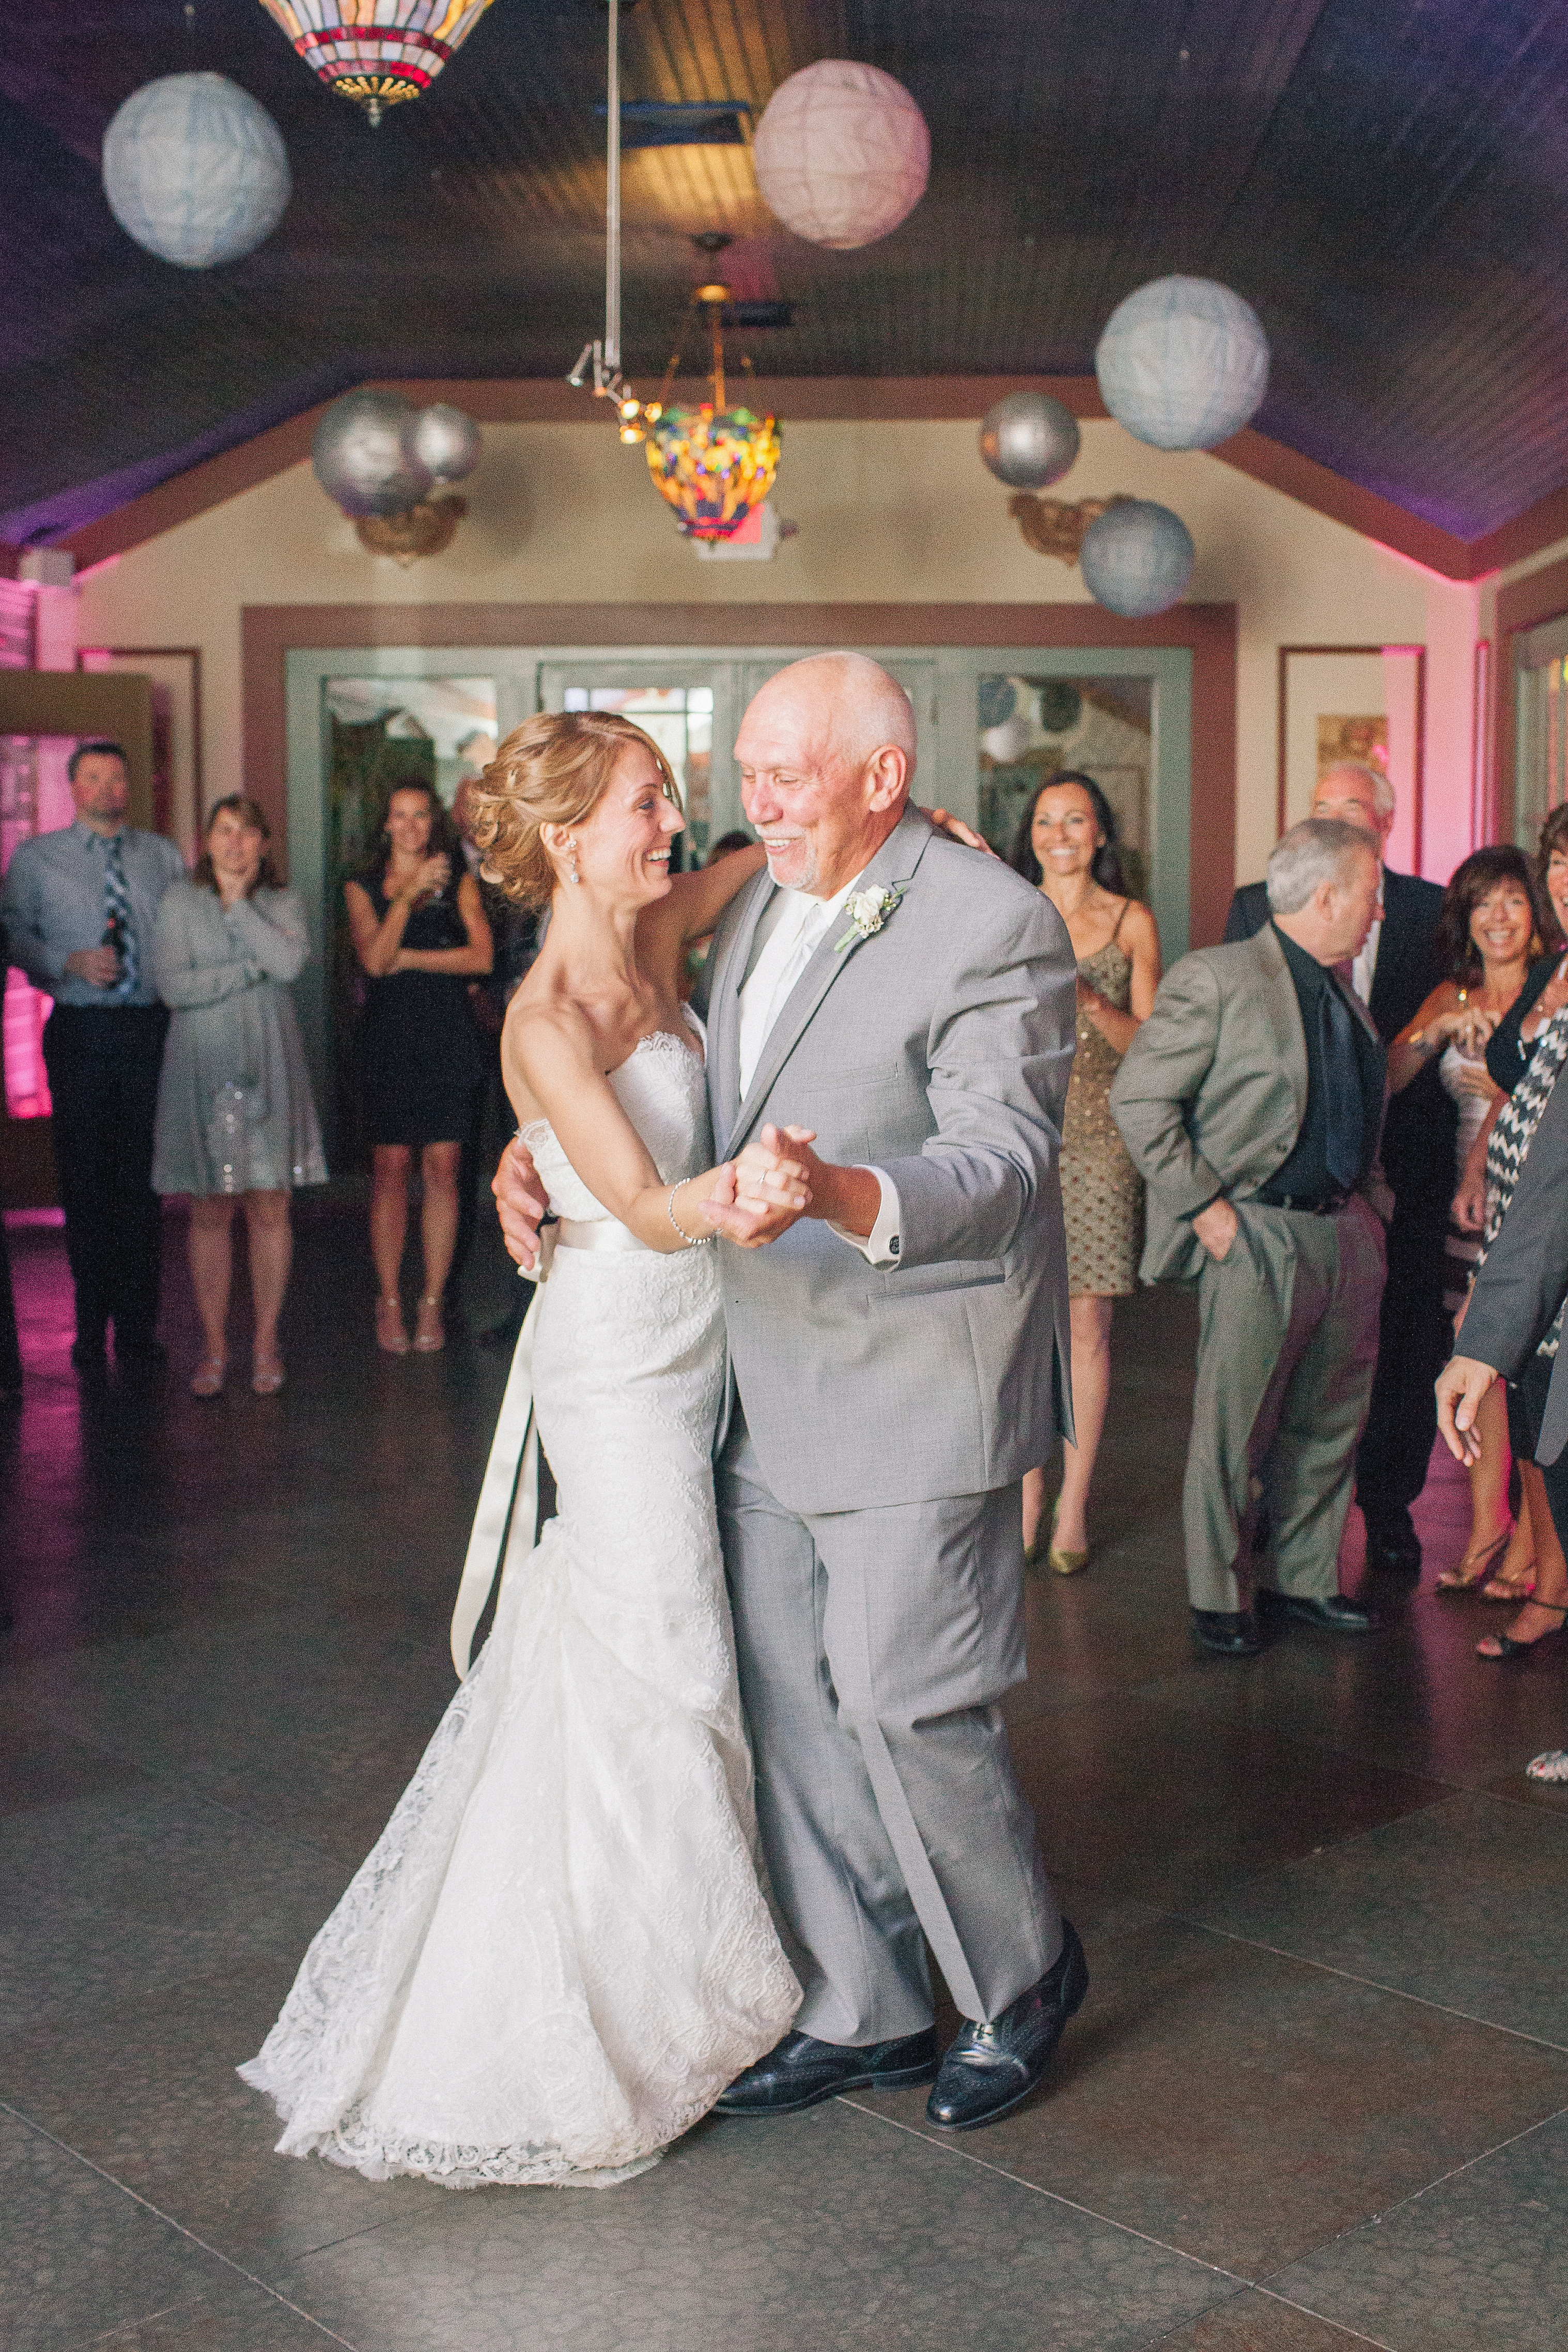 Jessica & Rich's Wedding Reception at the Roundhill Washingtonville